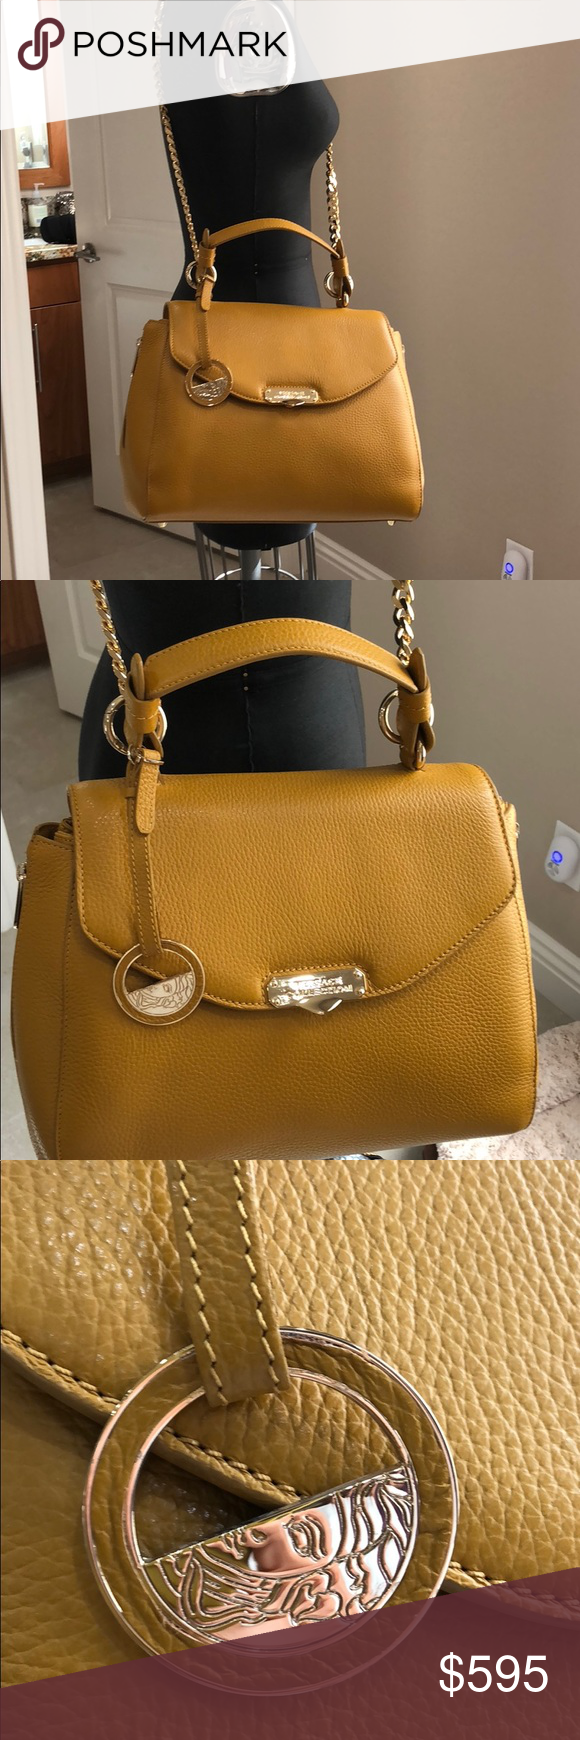 61f429b94d Versace collection mustard leather purse Brand new Versace Collection  Versace Bags Satchels